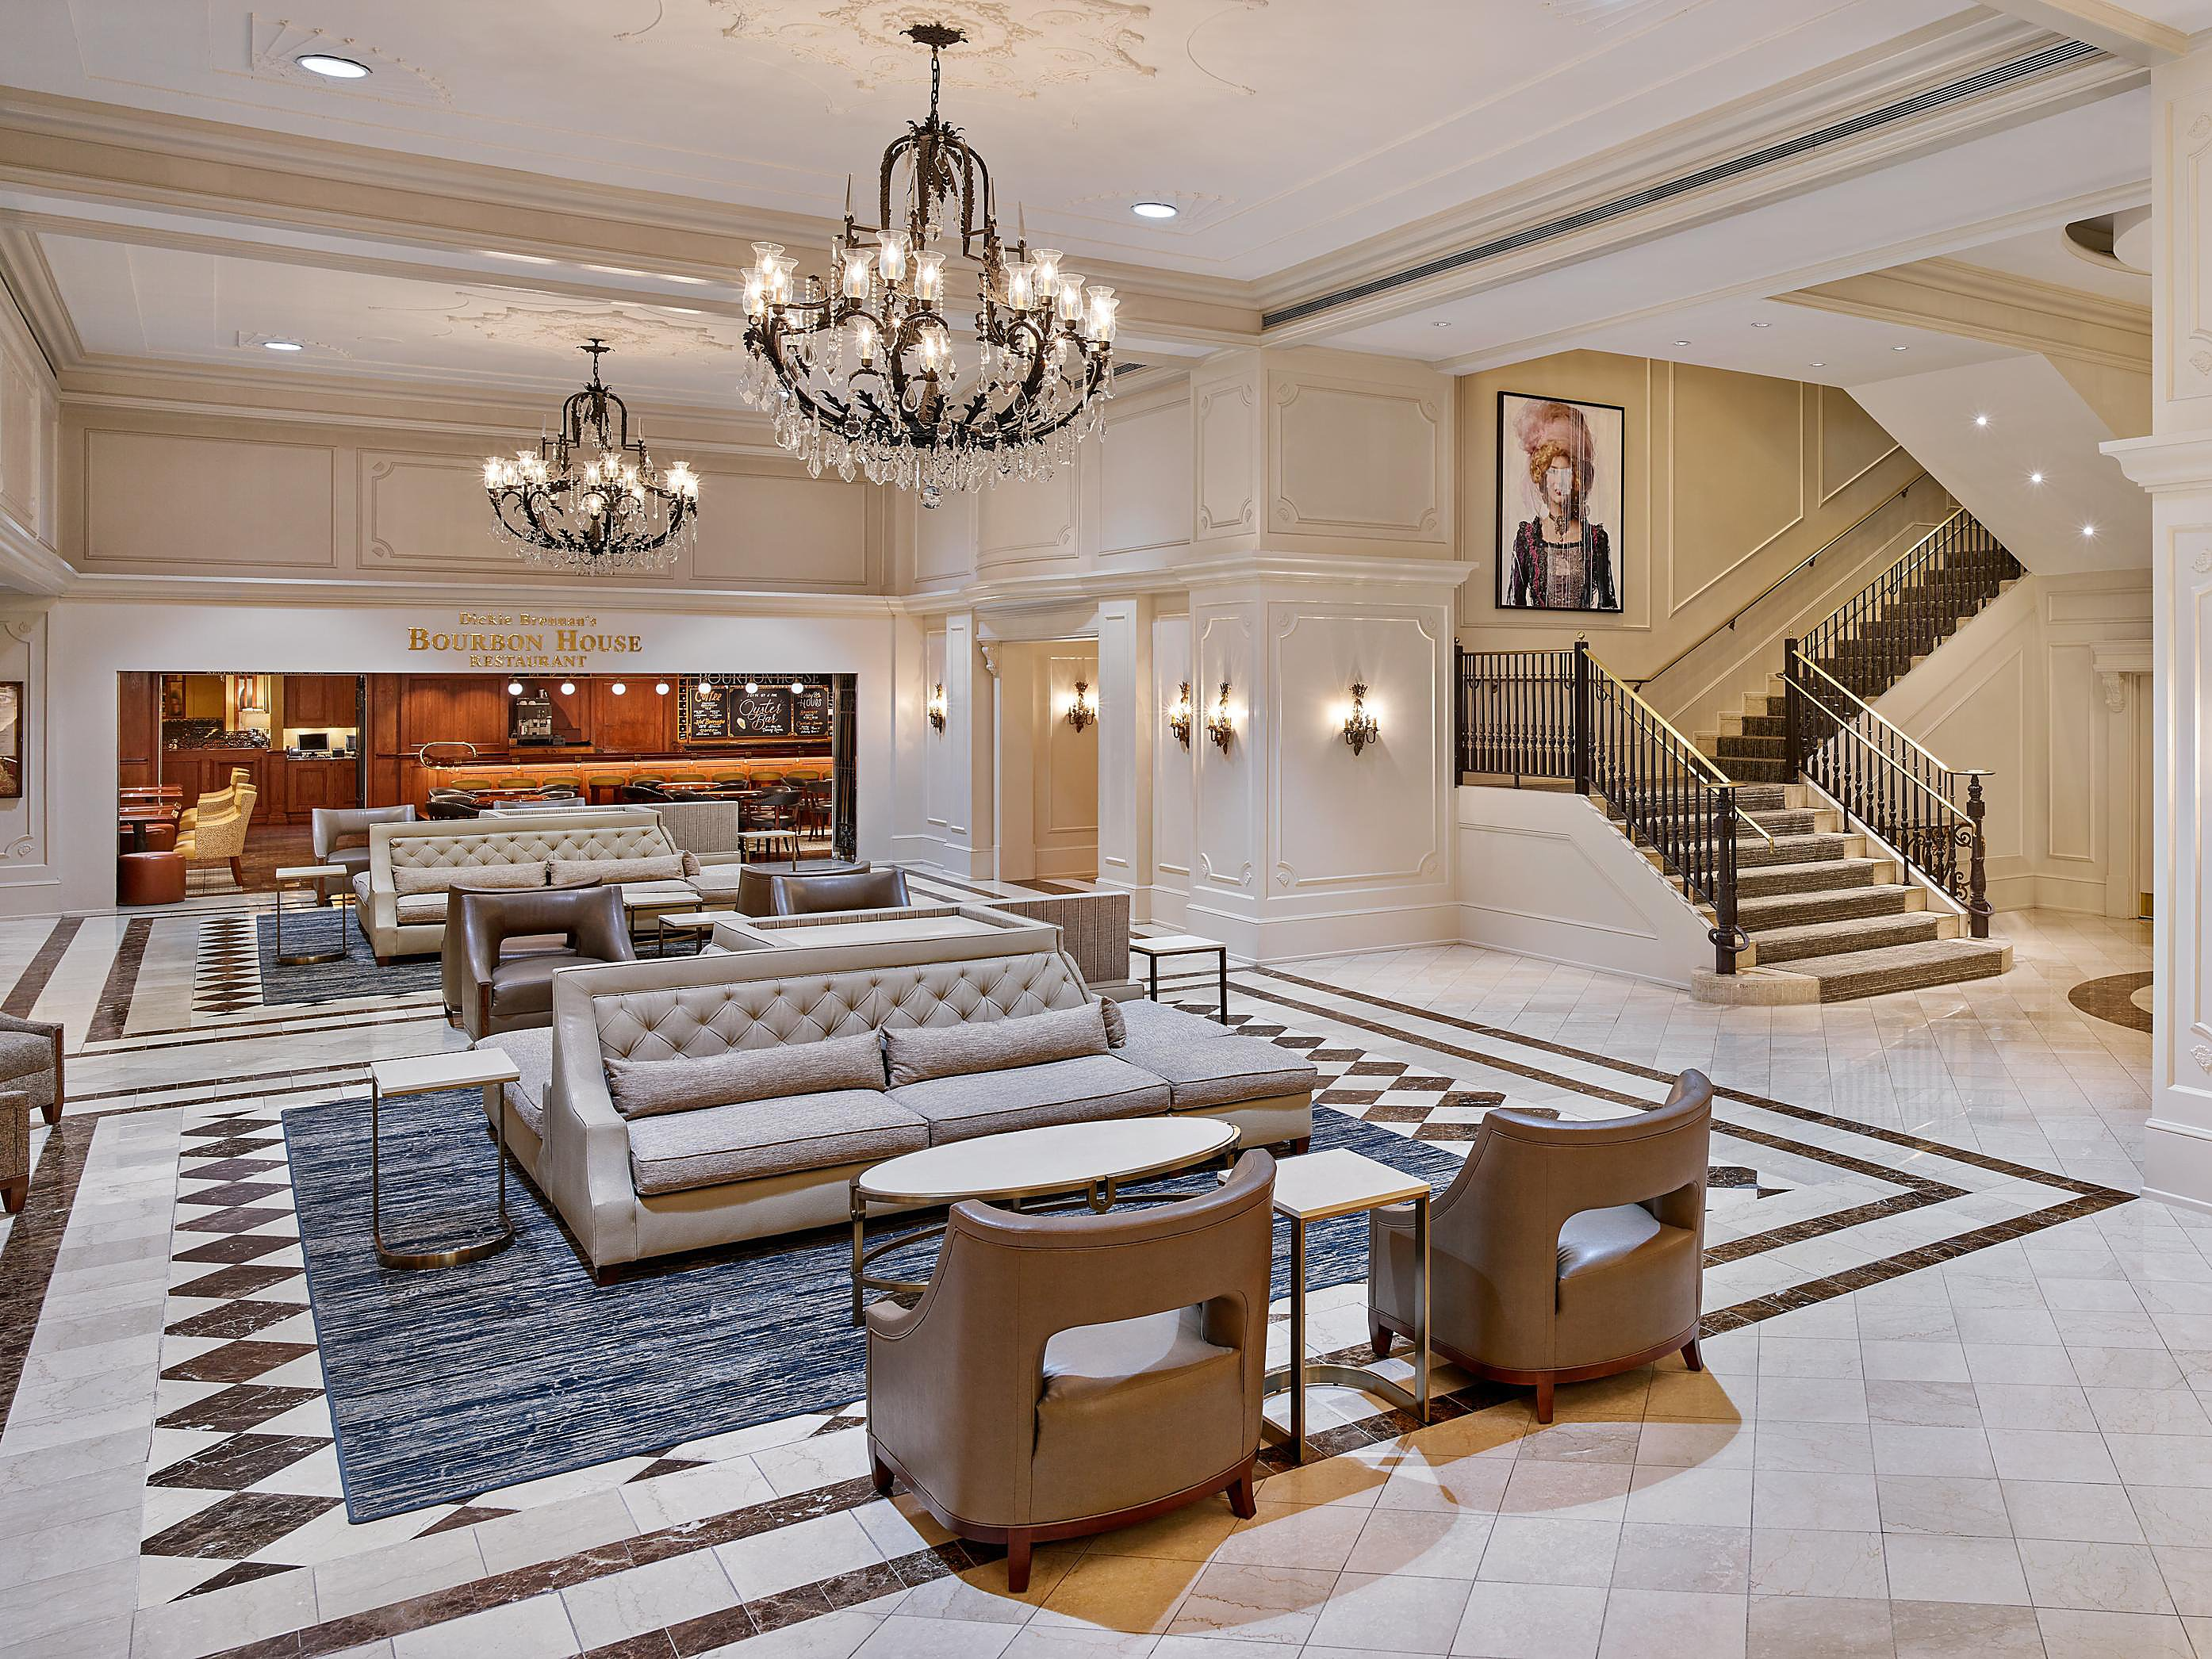 French Quarter Hotels >> Crowne Plaza New Orleans French Quarter Hotels In New